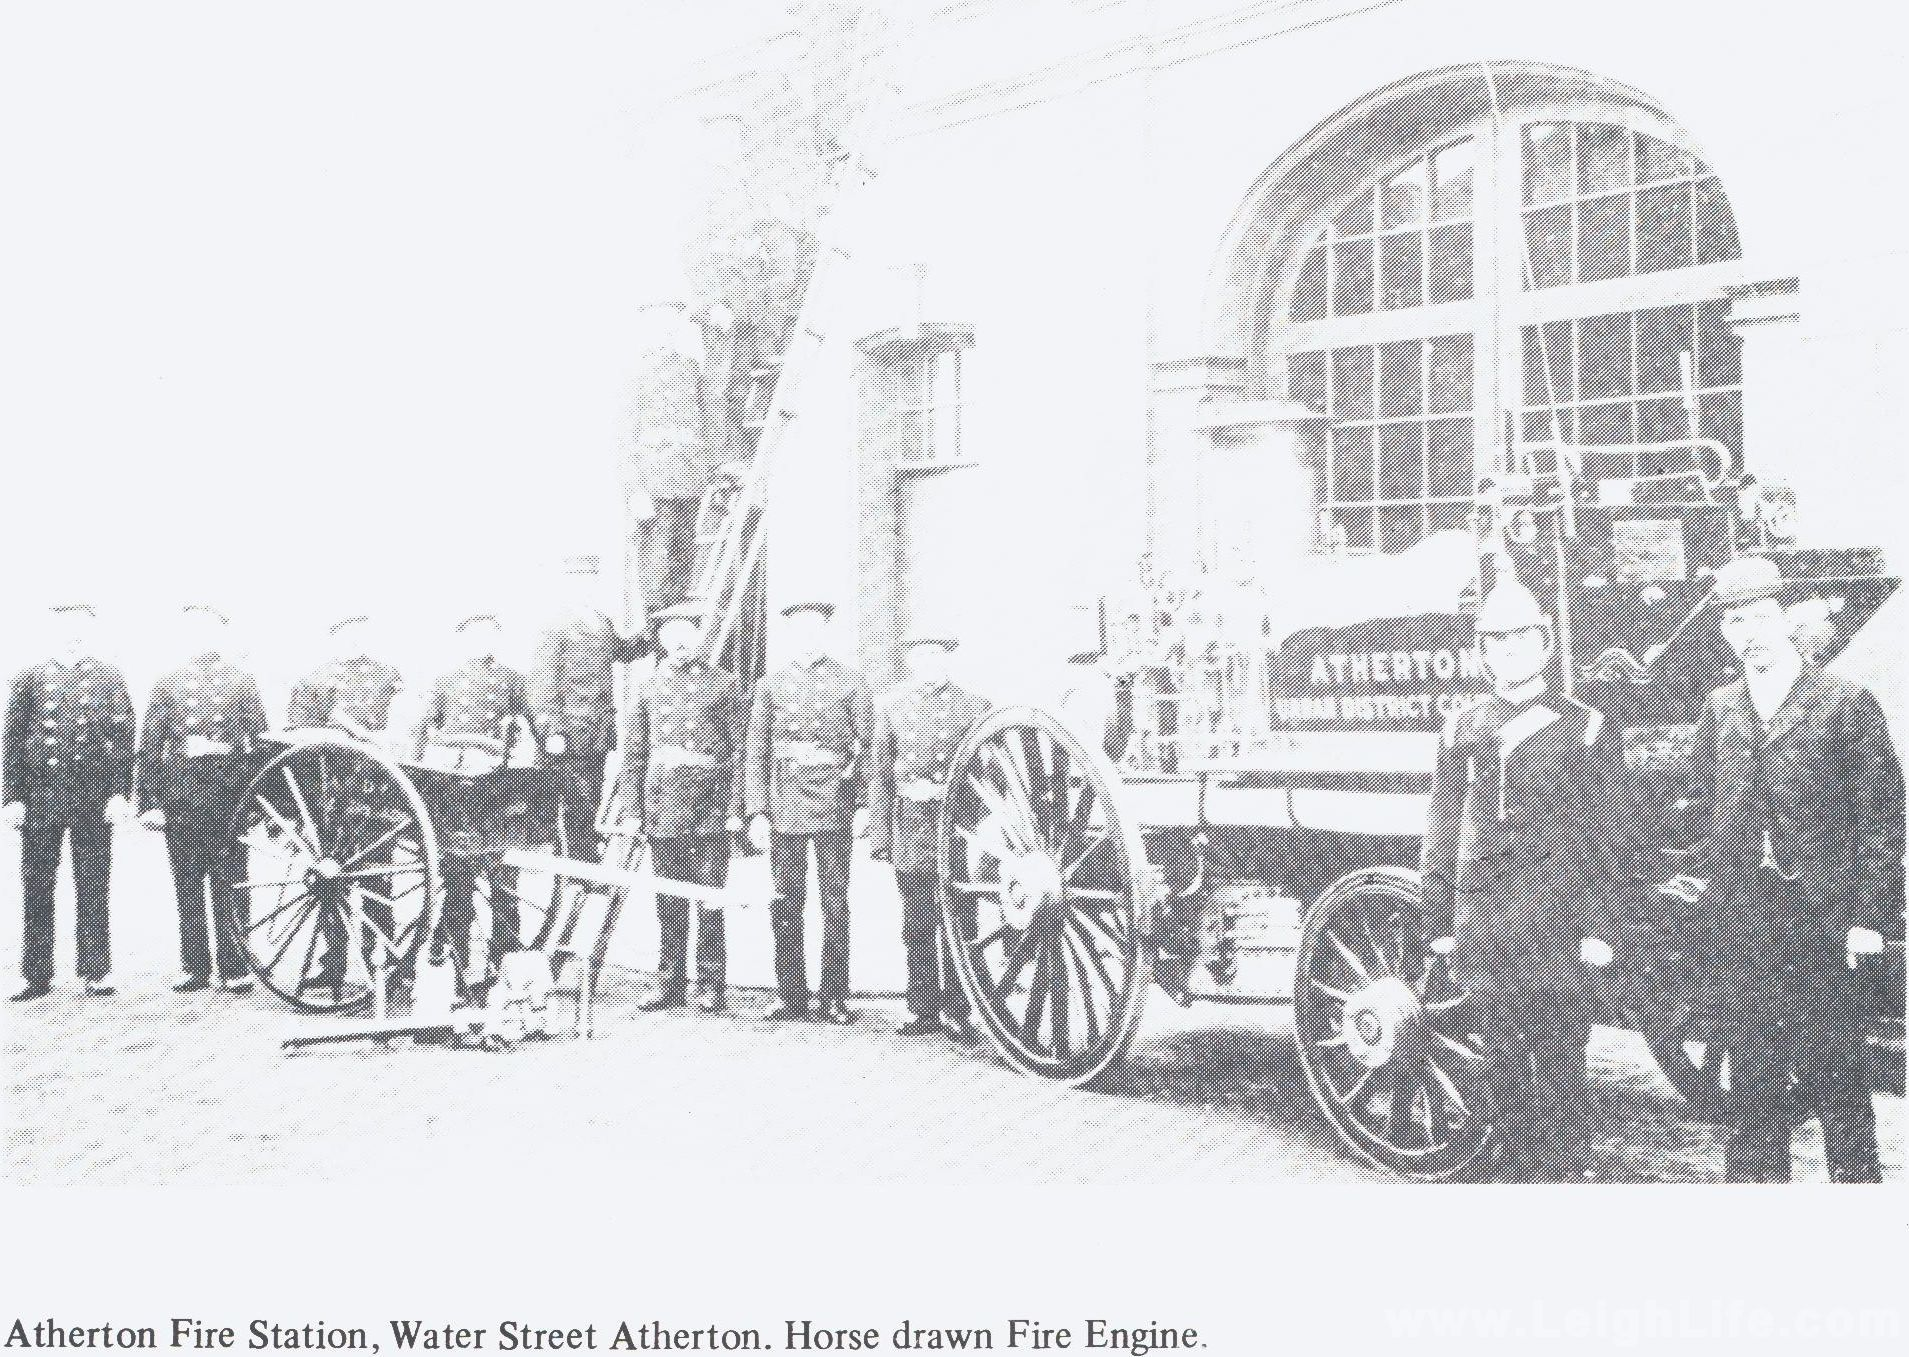 Atherton Fire Station With Images